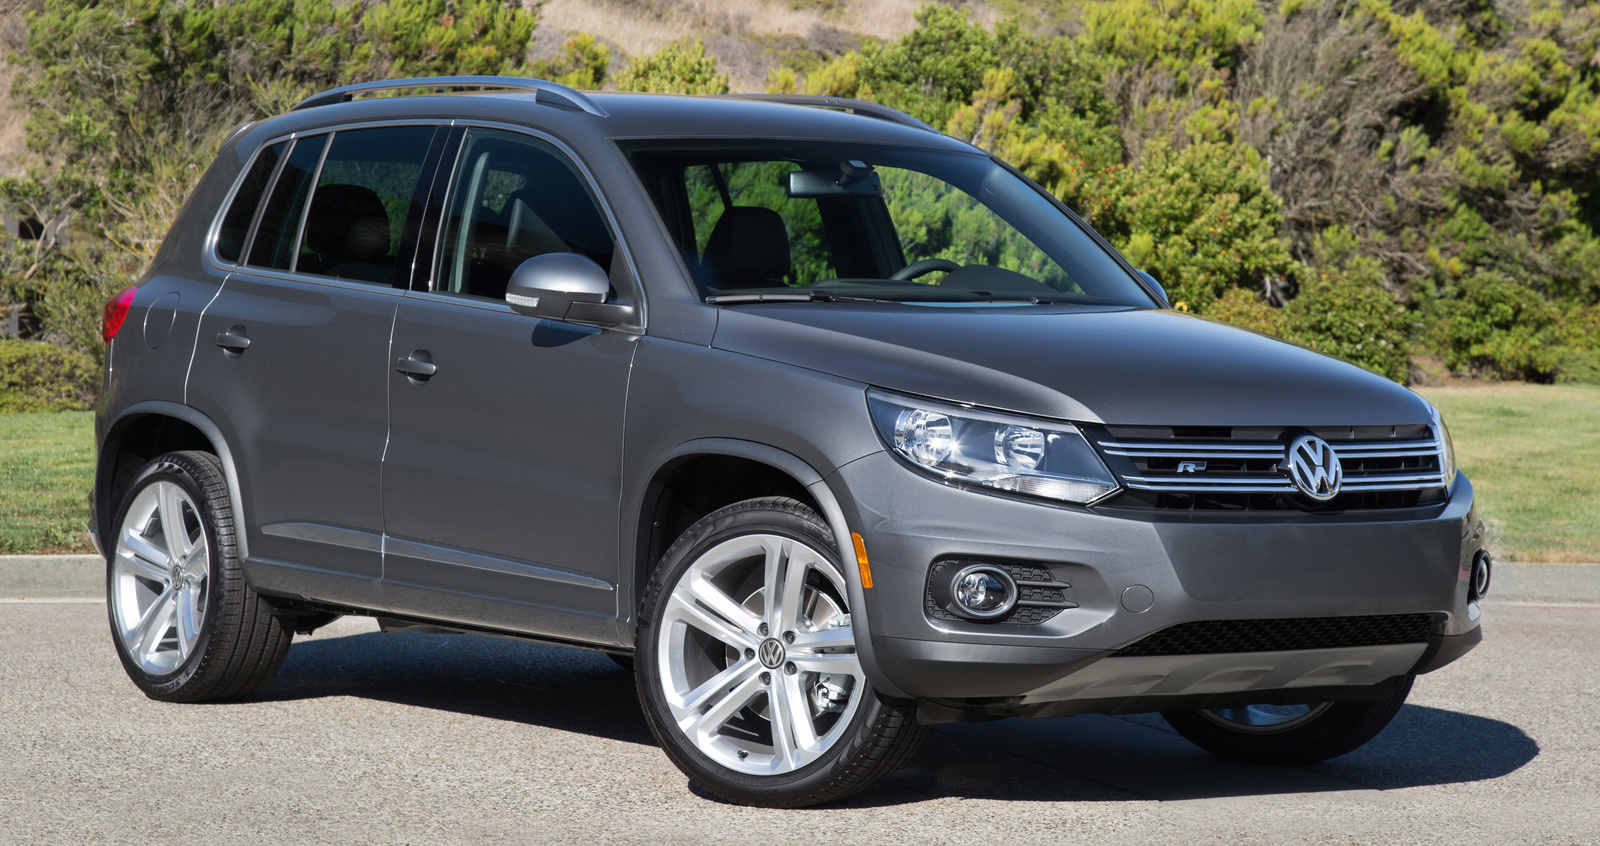 2016 volkswagen tiguan overview cargurus. Black Bedroom Furniture Sets. Home Design Ideas